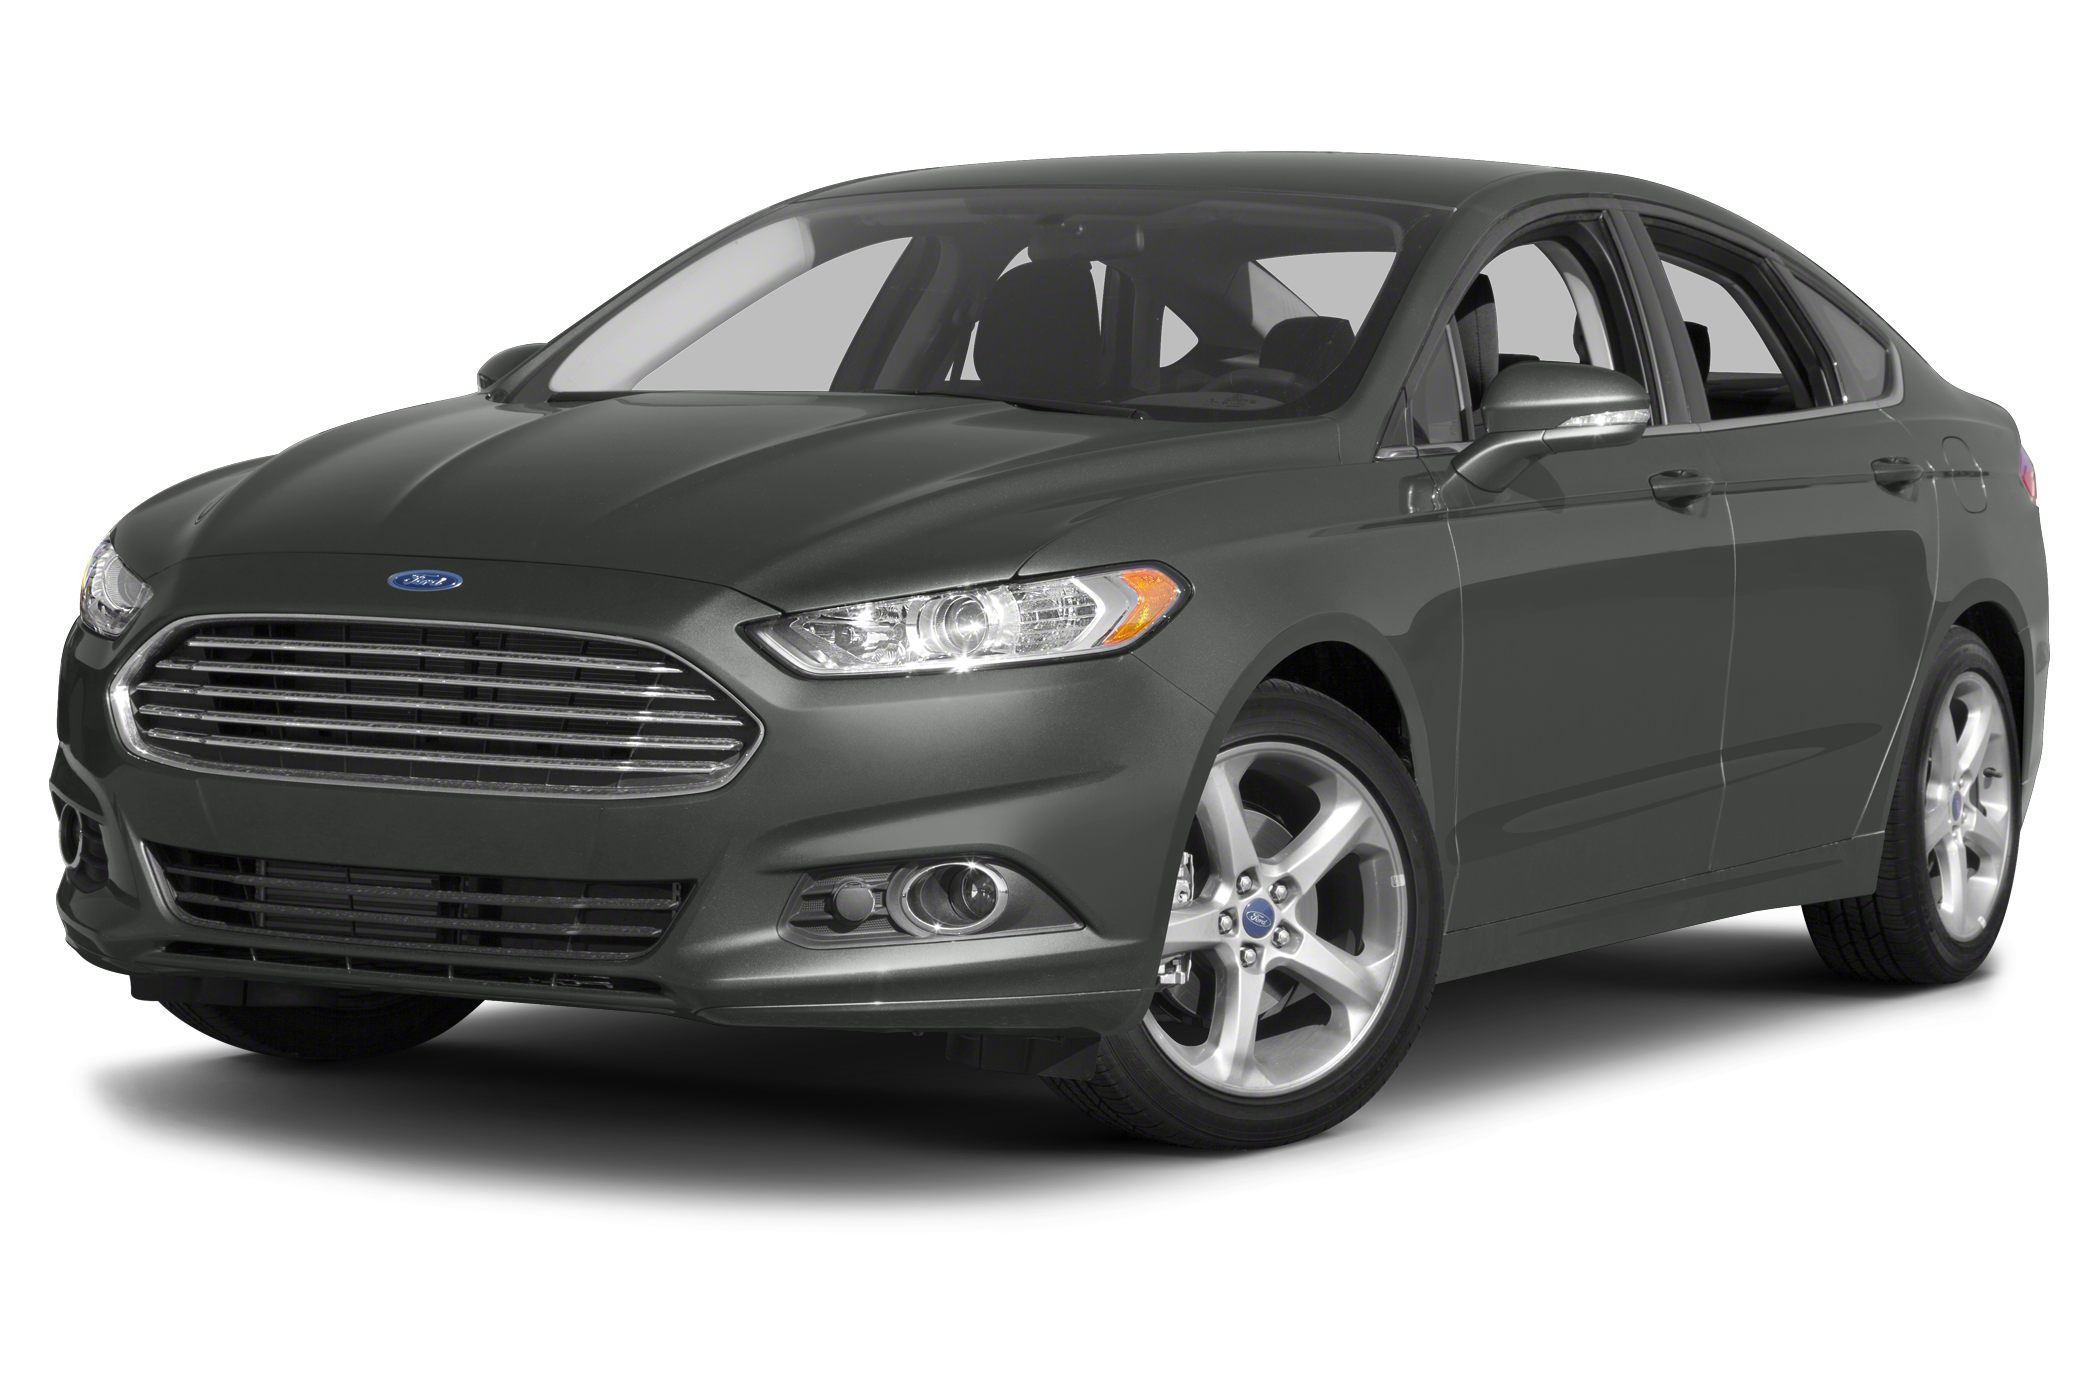 2014 Ford Fusion SE Sedan for sale in Edenton for $18,000 with 20,580 miles.